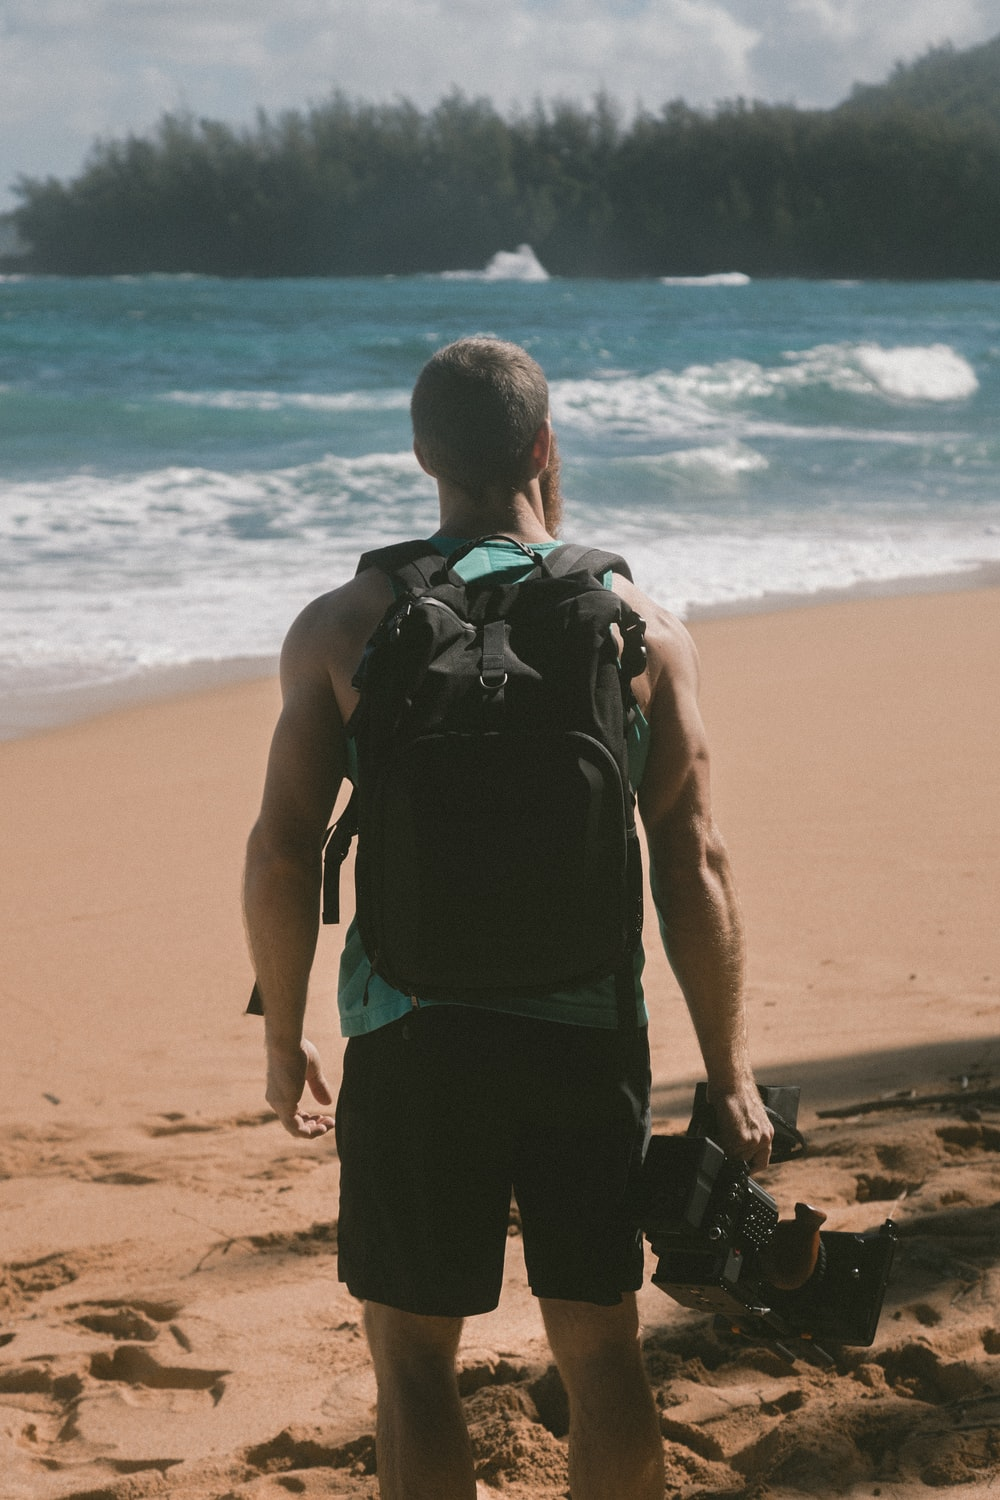 man carrying video camera standing on beach sand facing sea